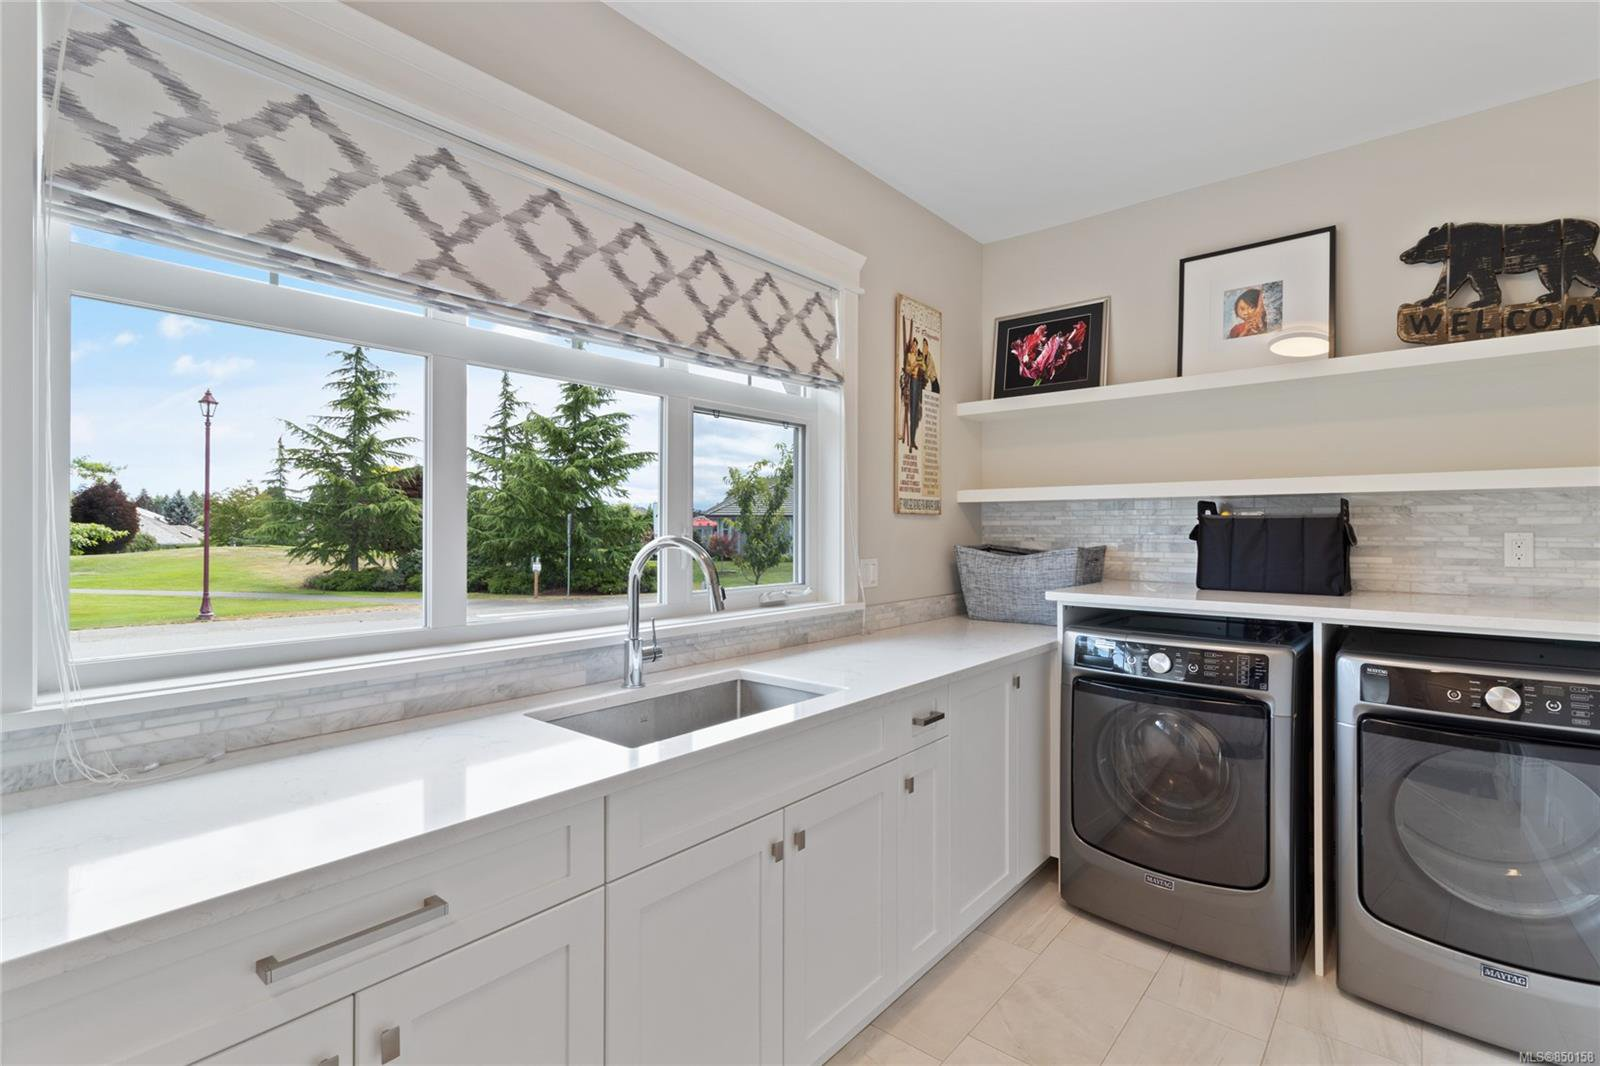 Photo 29: Photos: 3228 Majestic Dr in : CV Crown Isle House for sale (Comox Valley)  : MLS®# 850158